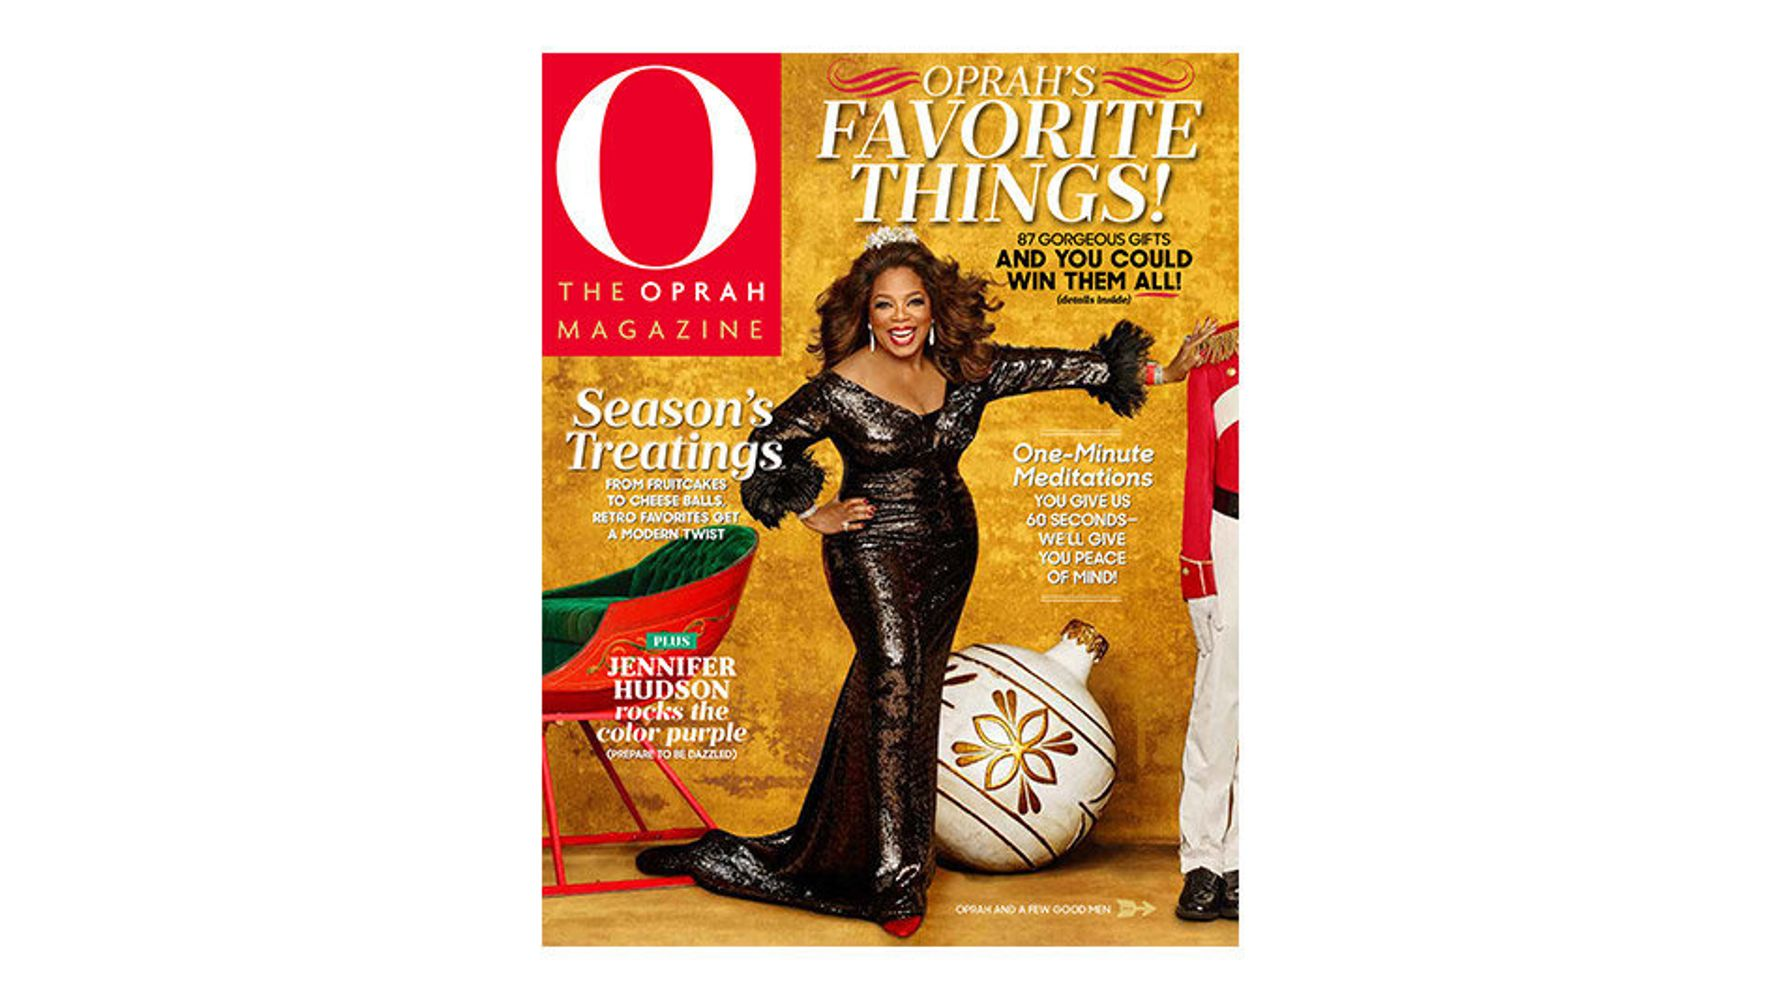 dfbe9e67a14 Oprah's Favorite Things -- 2015 Edition! | HuffPost